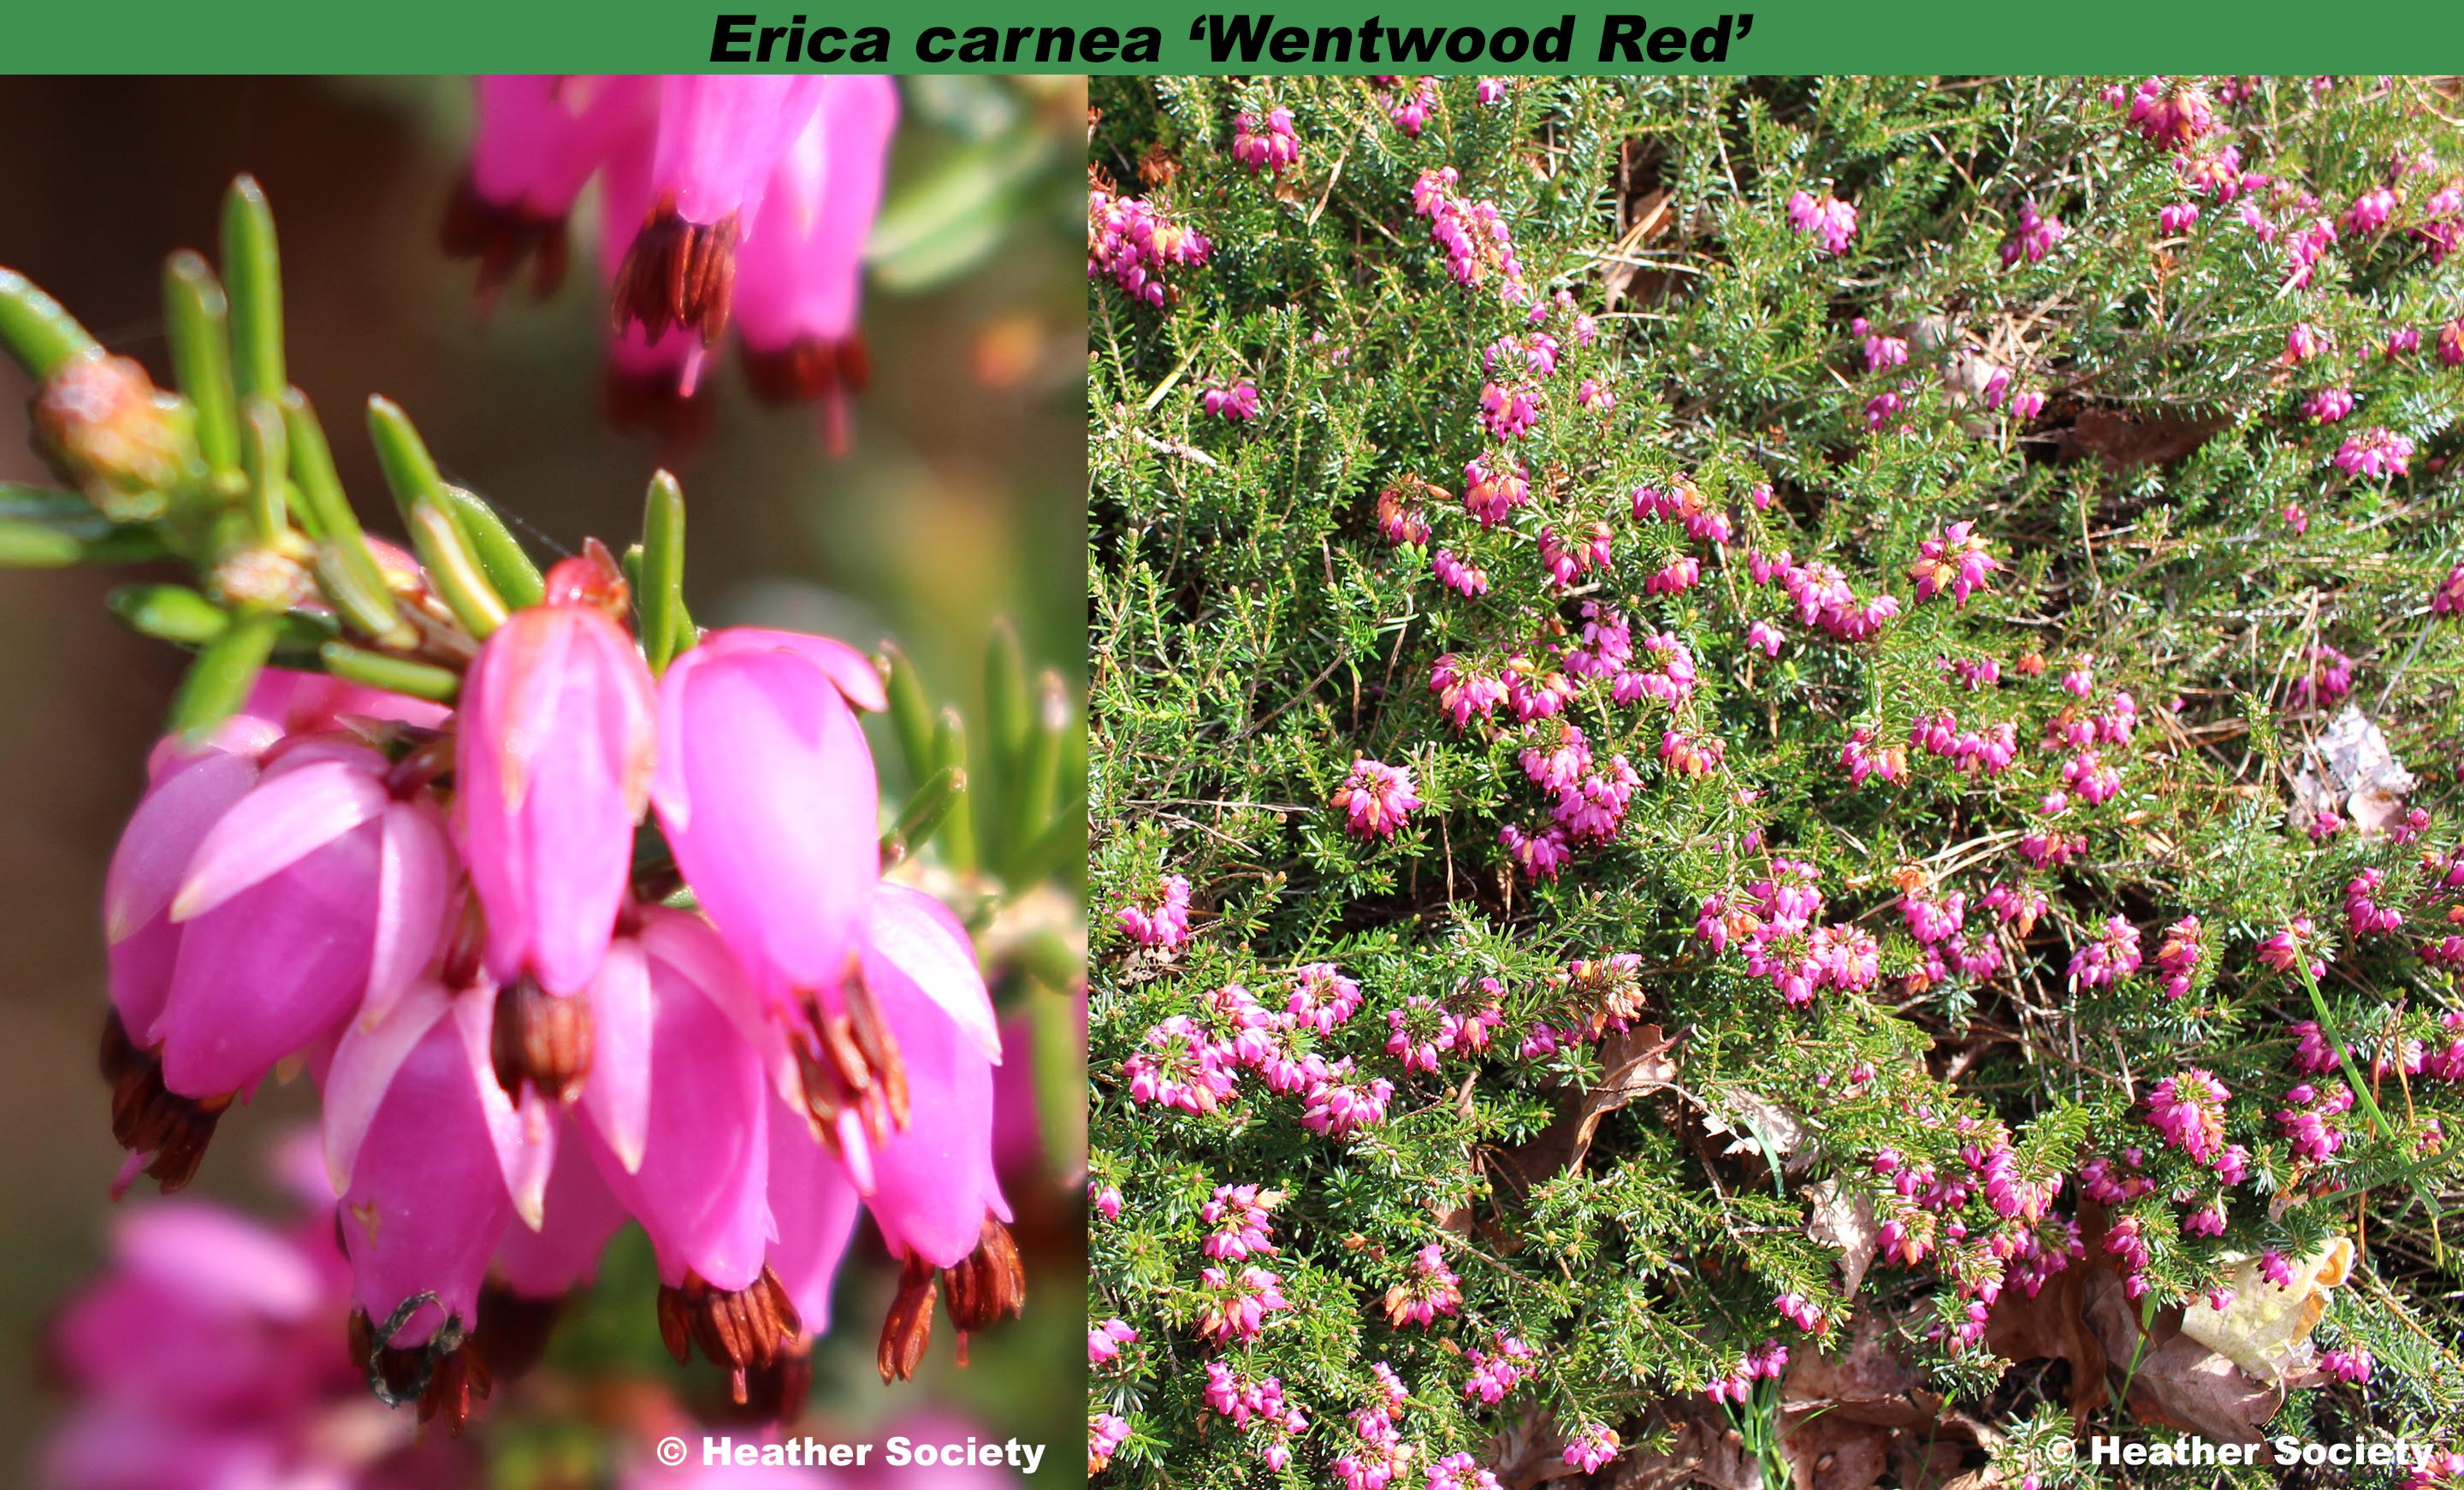 'Wentwood Red'